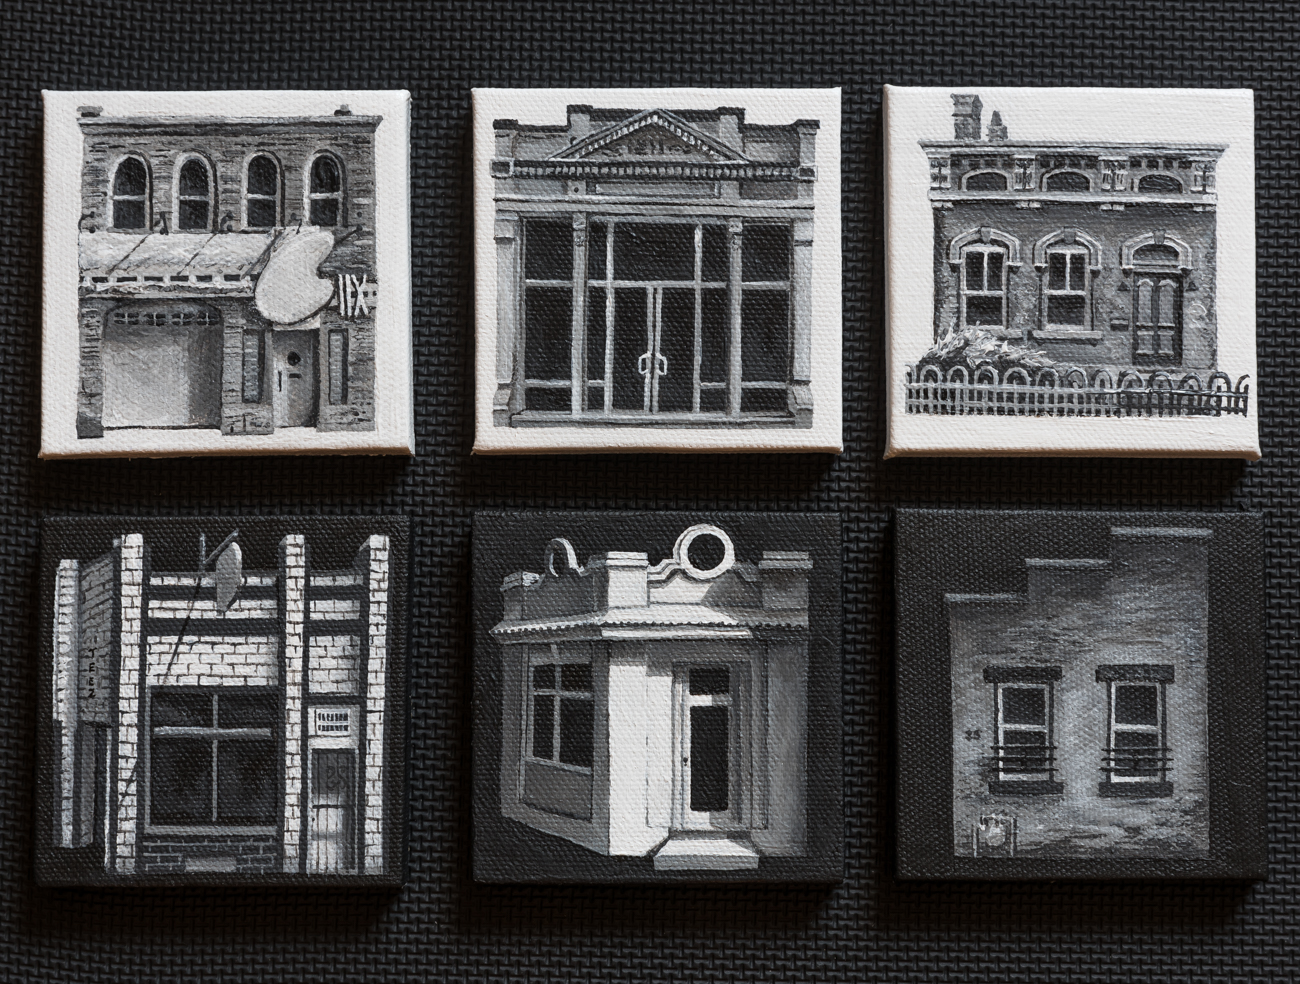 Ledge Gallery's 'Lilliputian Landscapes' Show - I was the highlighted artist for August 2016 at Over-the-Rhine's former Ledge Gallery location. CityBeat subsequently wrote about the gallery and included my show in the write up.